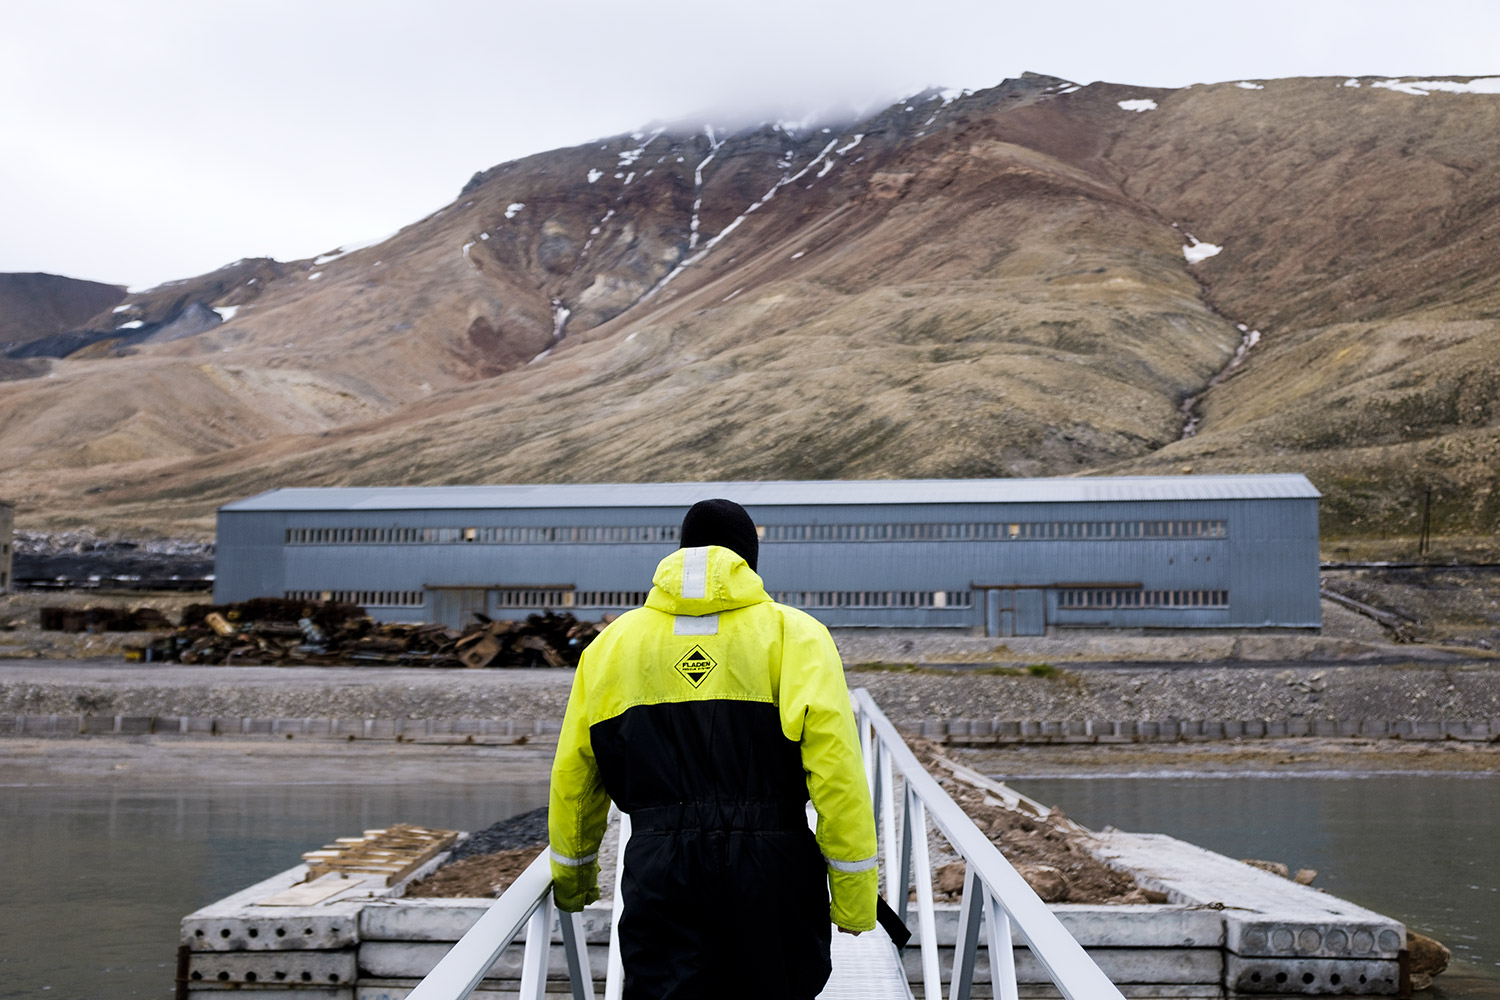 Our arrival in Pyramiden